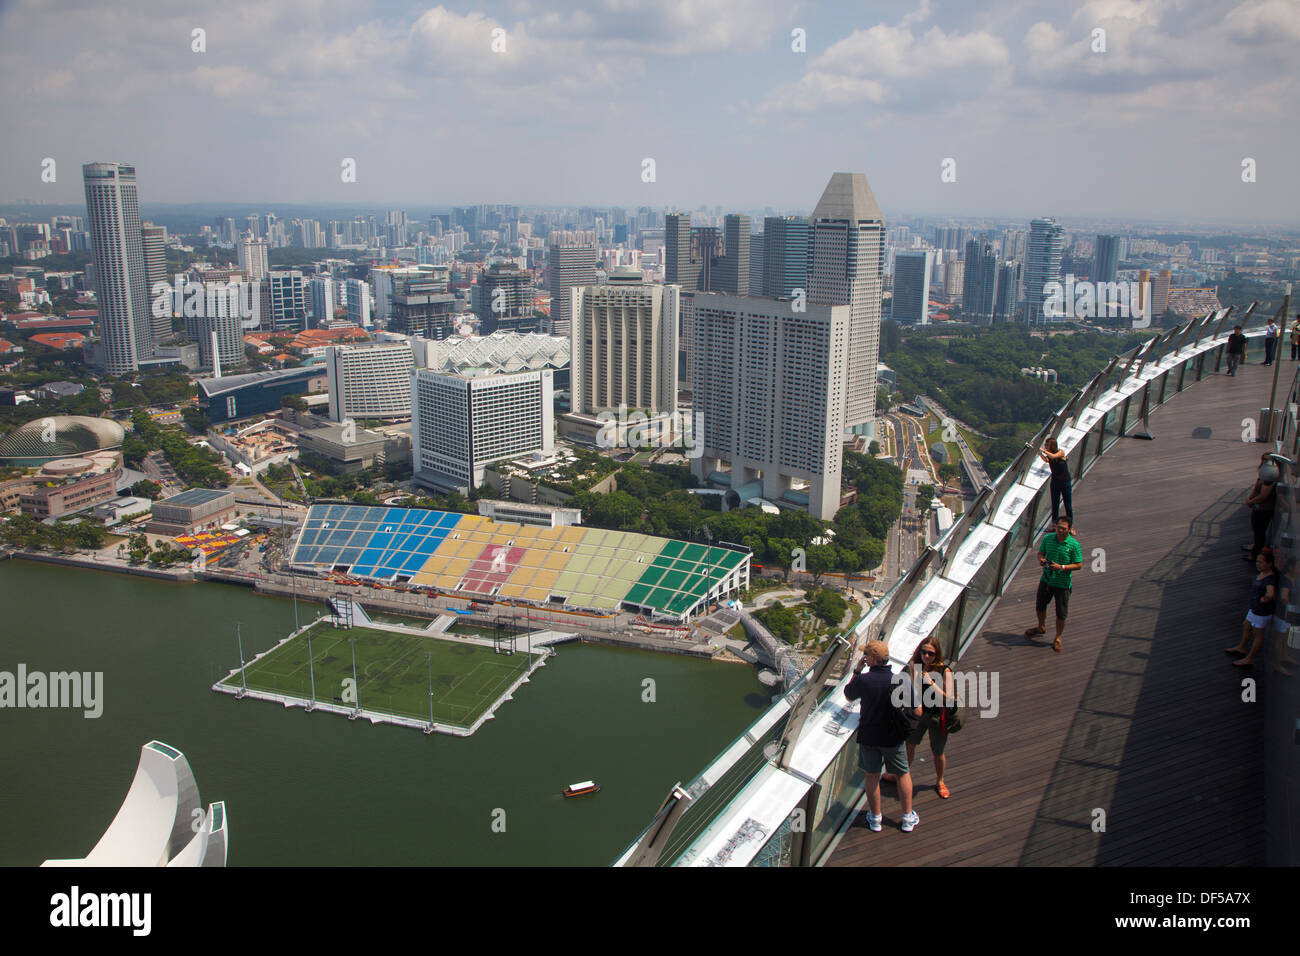 Marina bay sands hotel roof pool singapore asia destination view stock photo royalty free image - Singapore hotel piscina ...